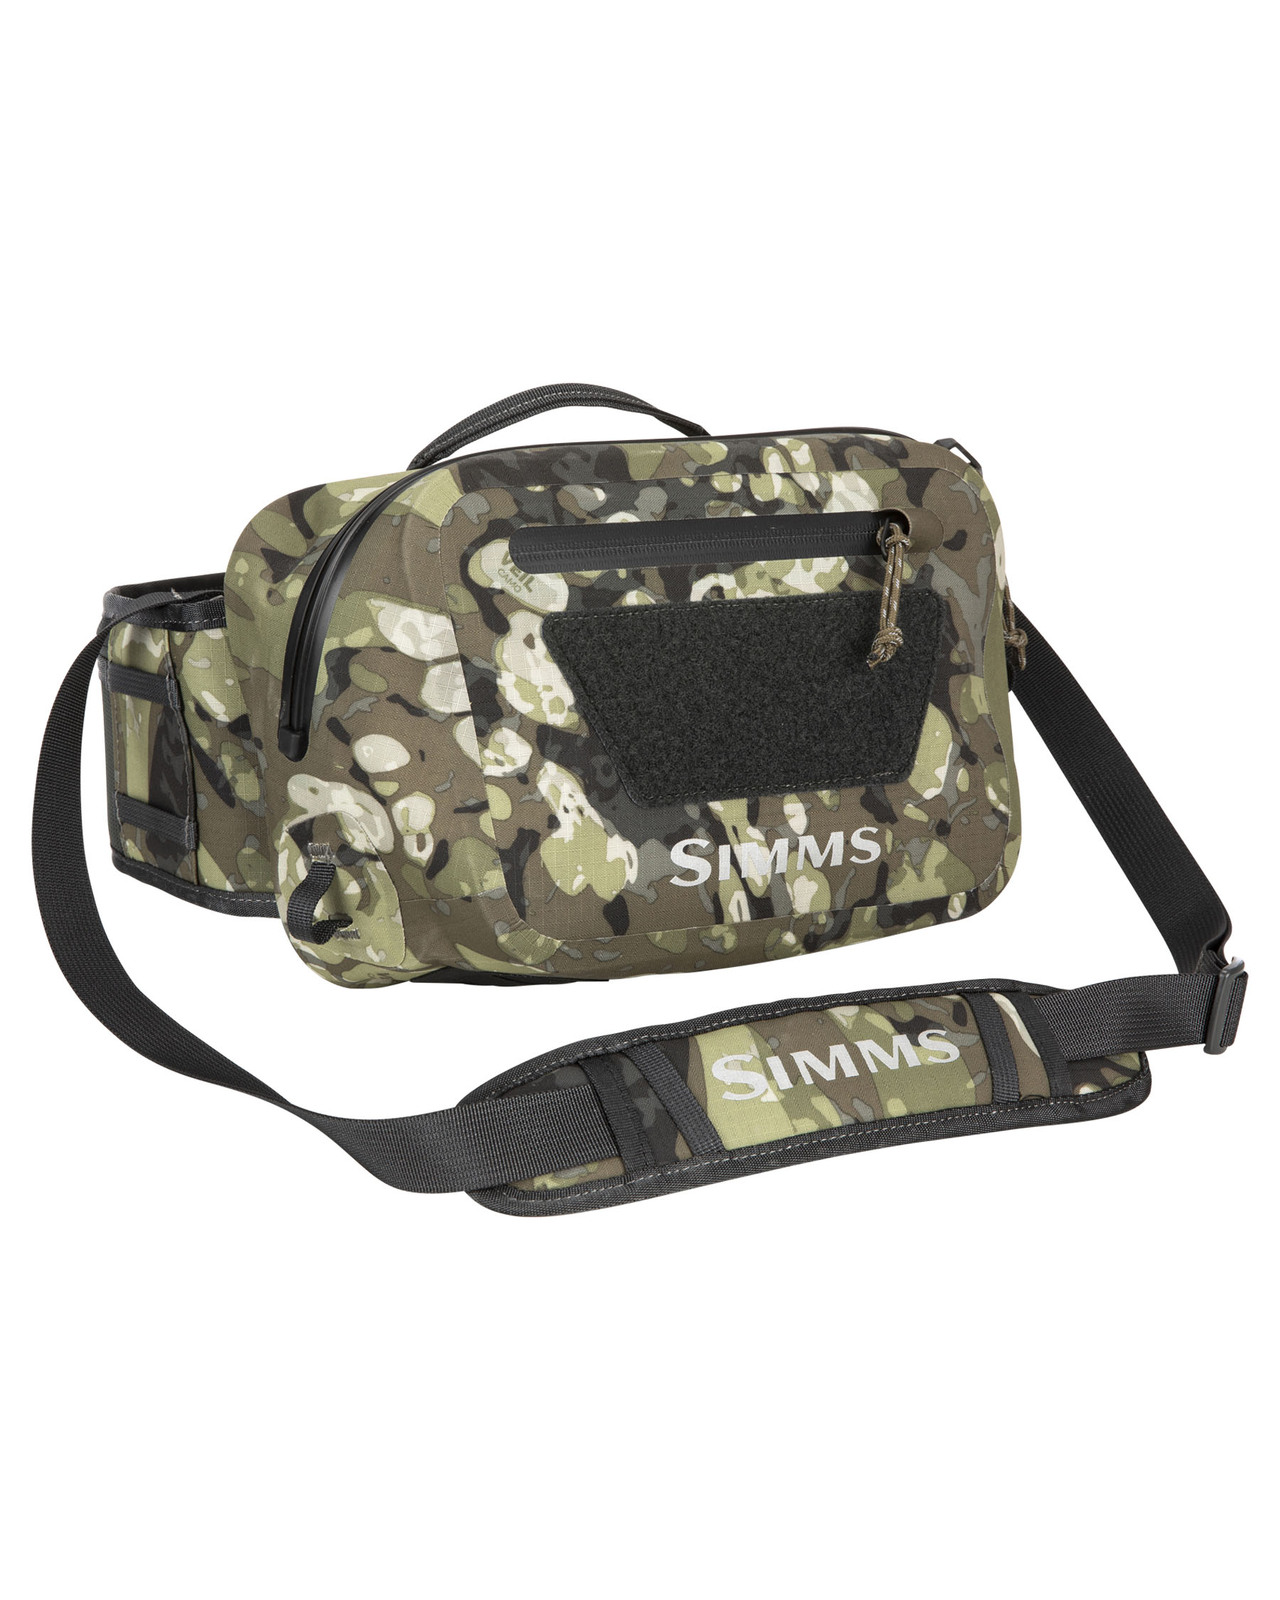 Simms Ledvinka Dry Creek Z Hip Pack, Riparian Camo